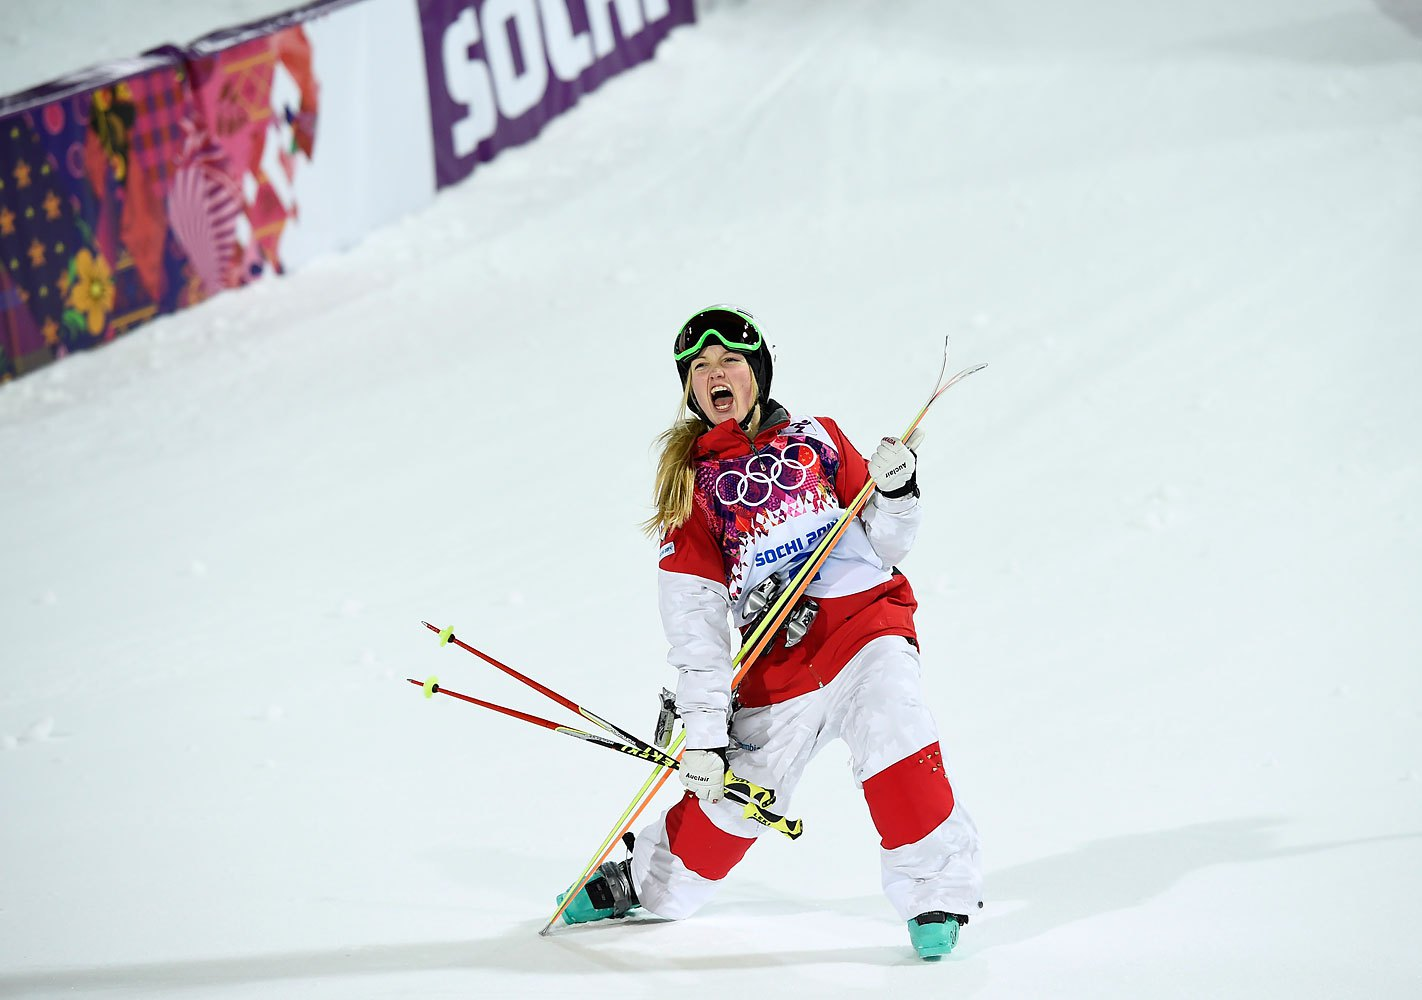 Canada's Justine Dufour-Lapointe celebrates after winning the women's freestyle skiing moguls final competition,  Feb. 8, 2014.